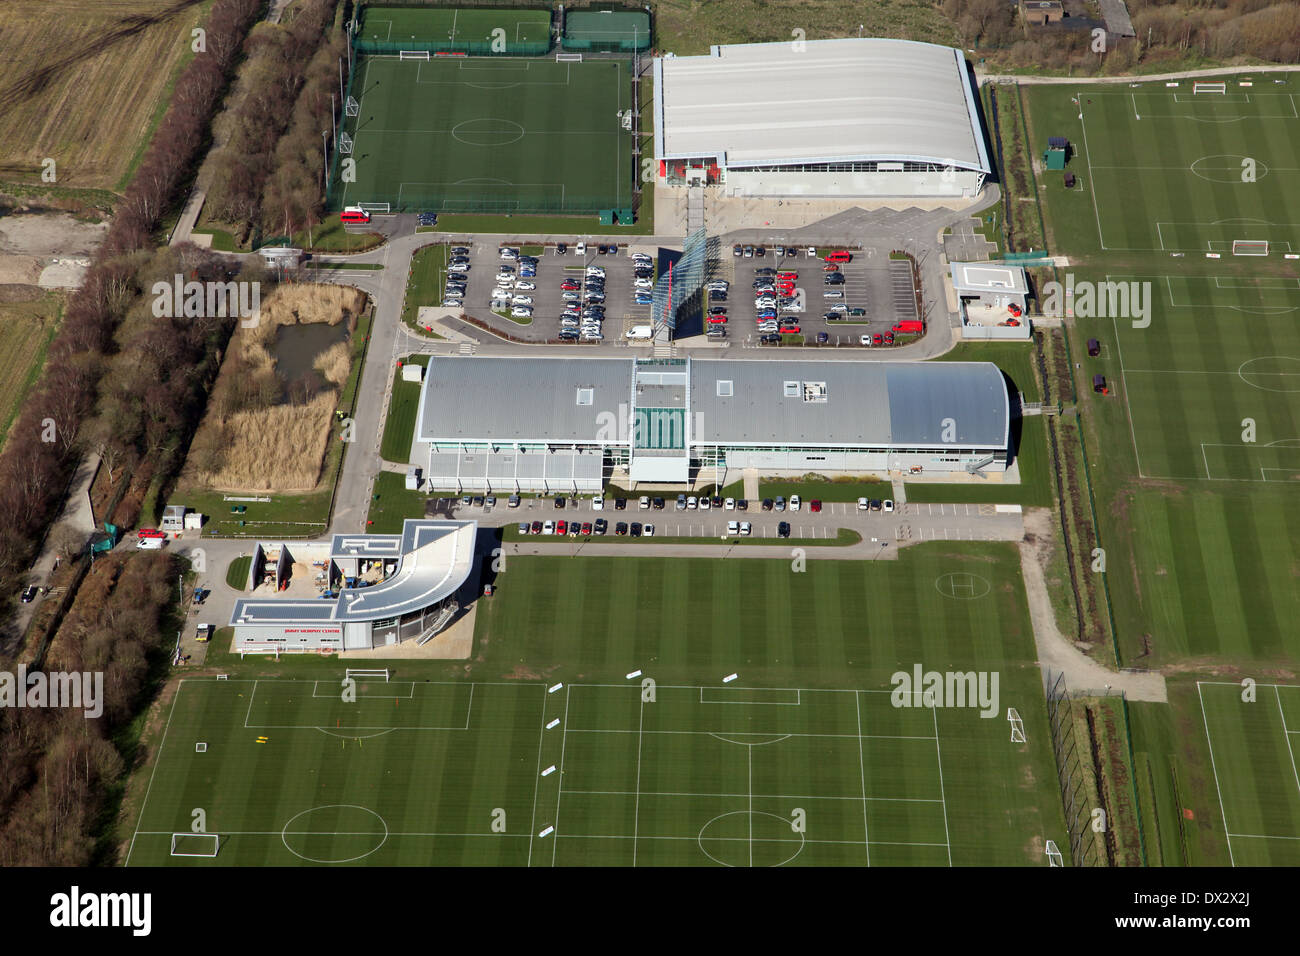 Aerial View Of Manchester United Football Training Ground At Stock Photo Alamy